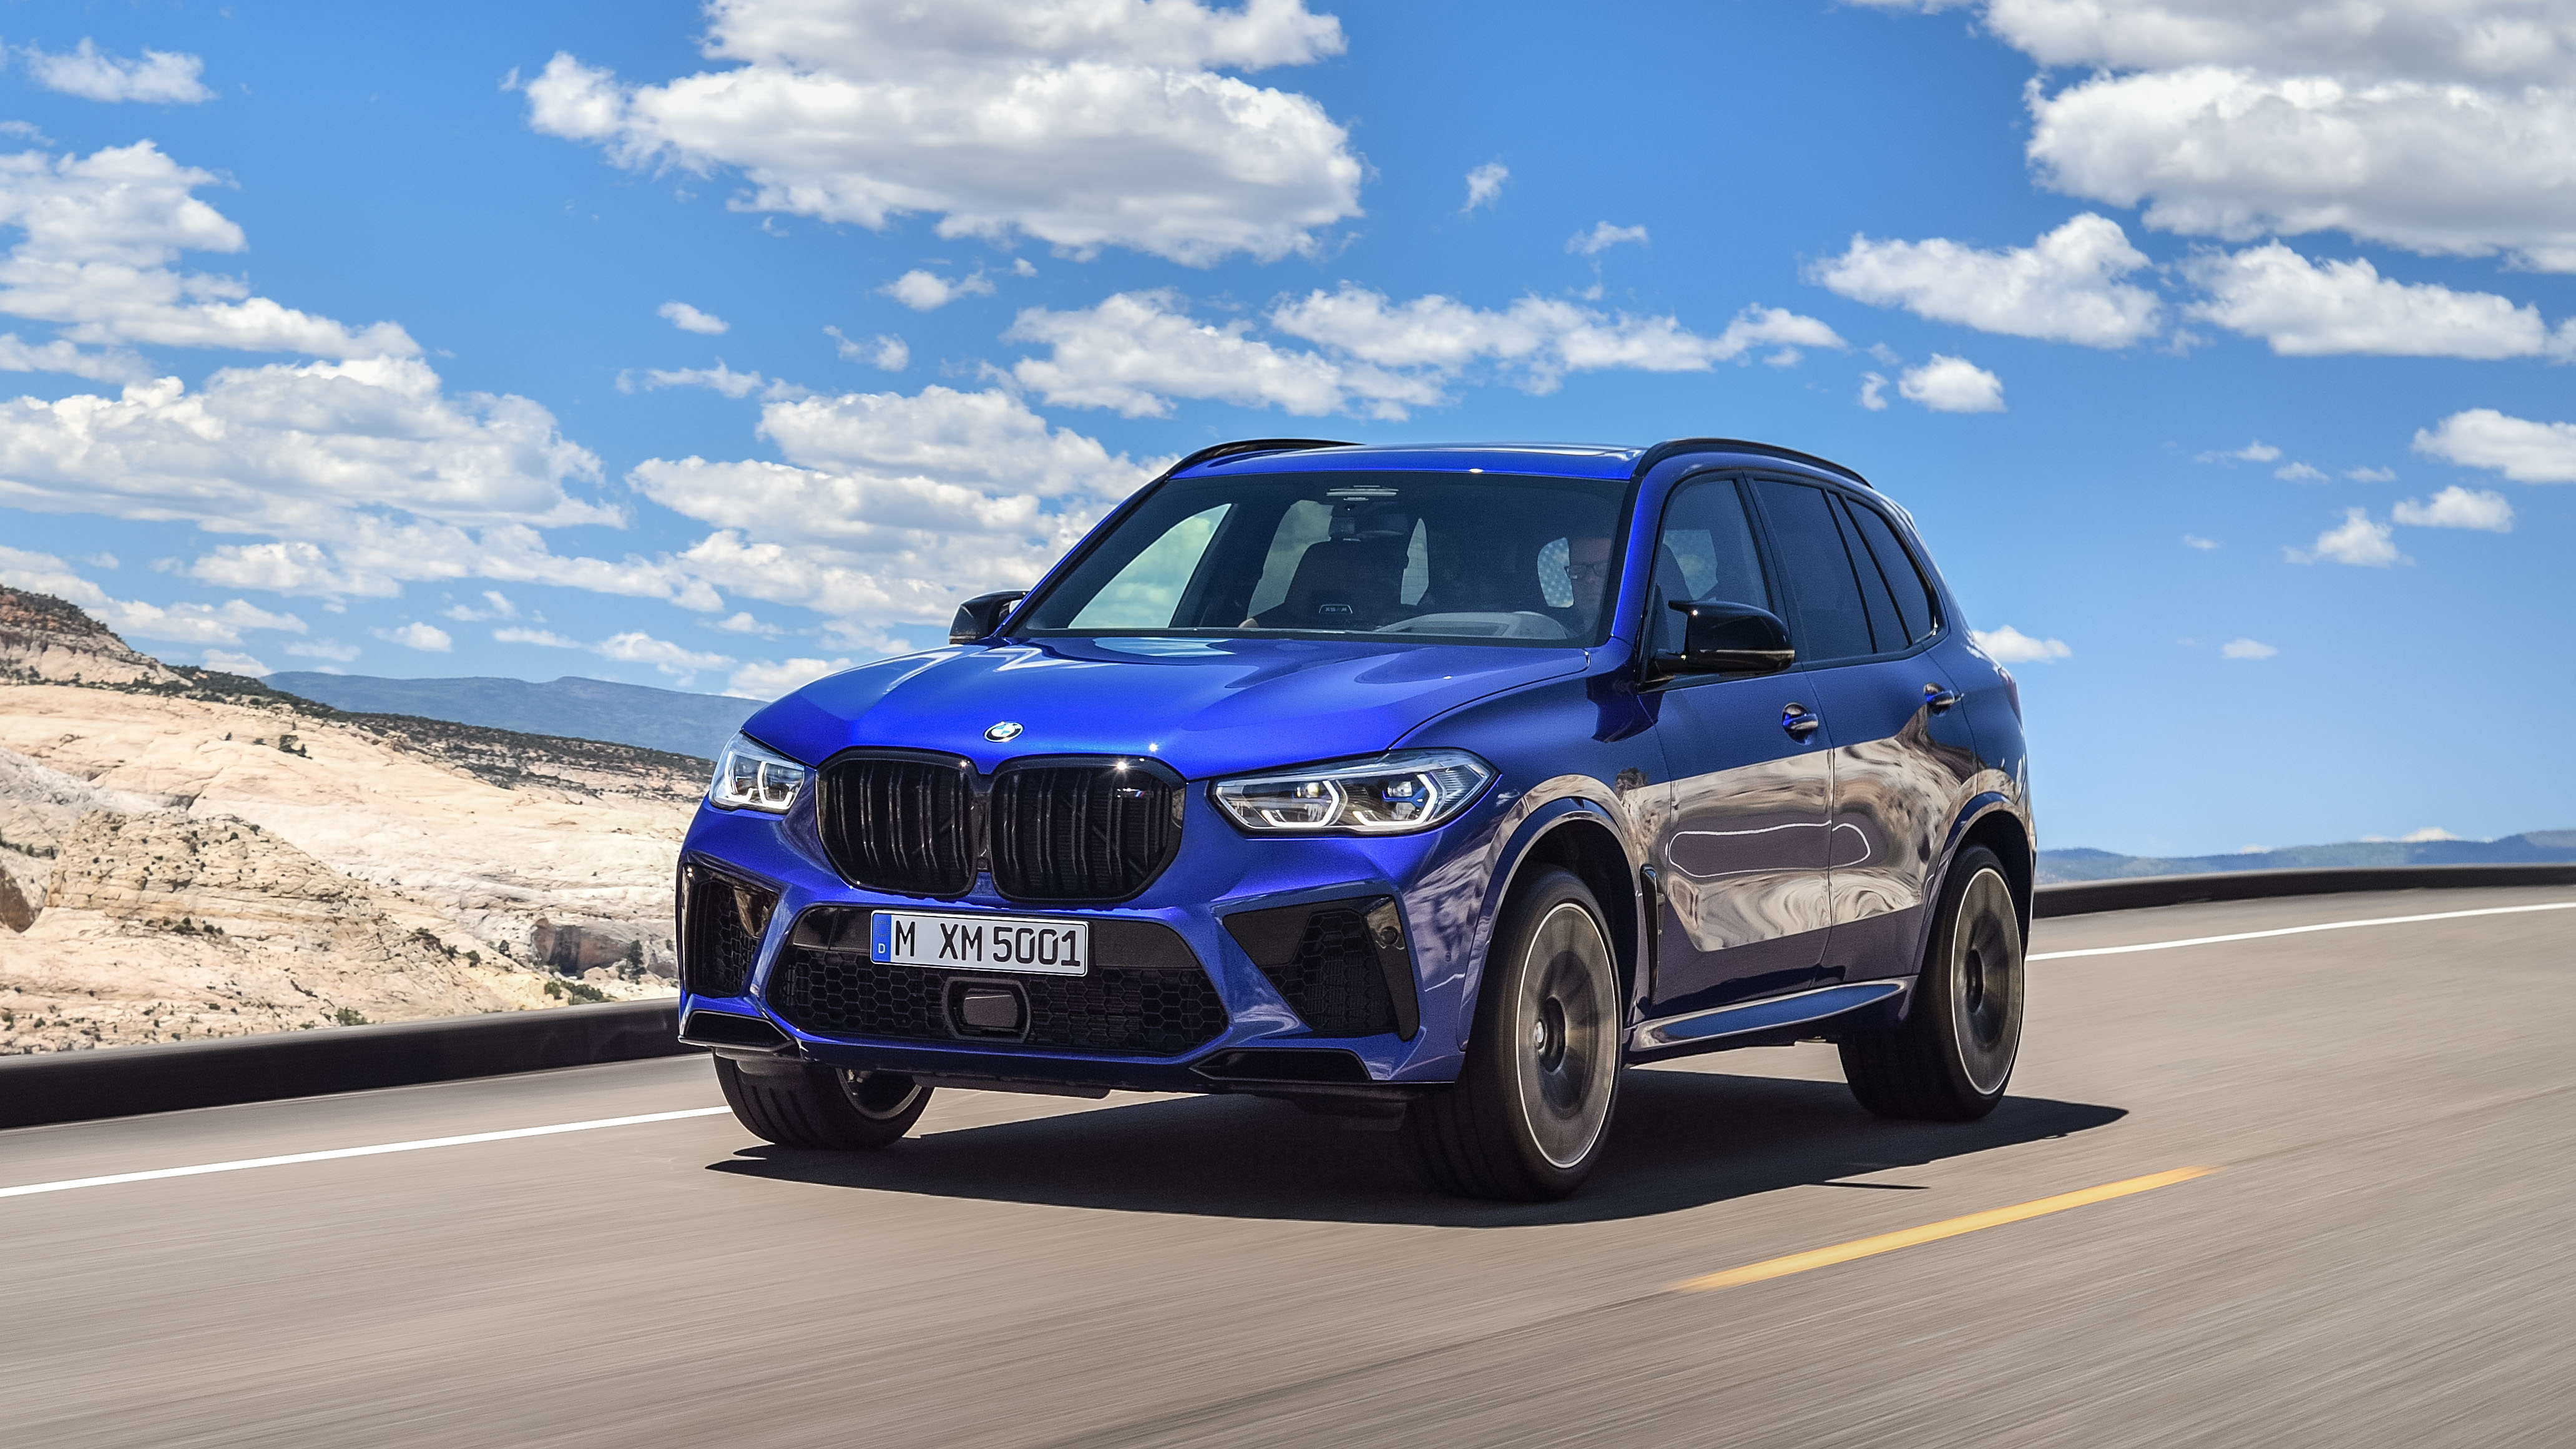 2020 Bmw X5 M And X6 M Unleashed Plus Competition Models